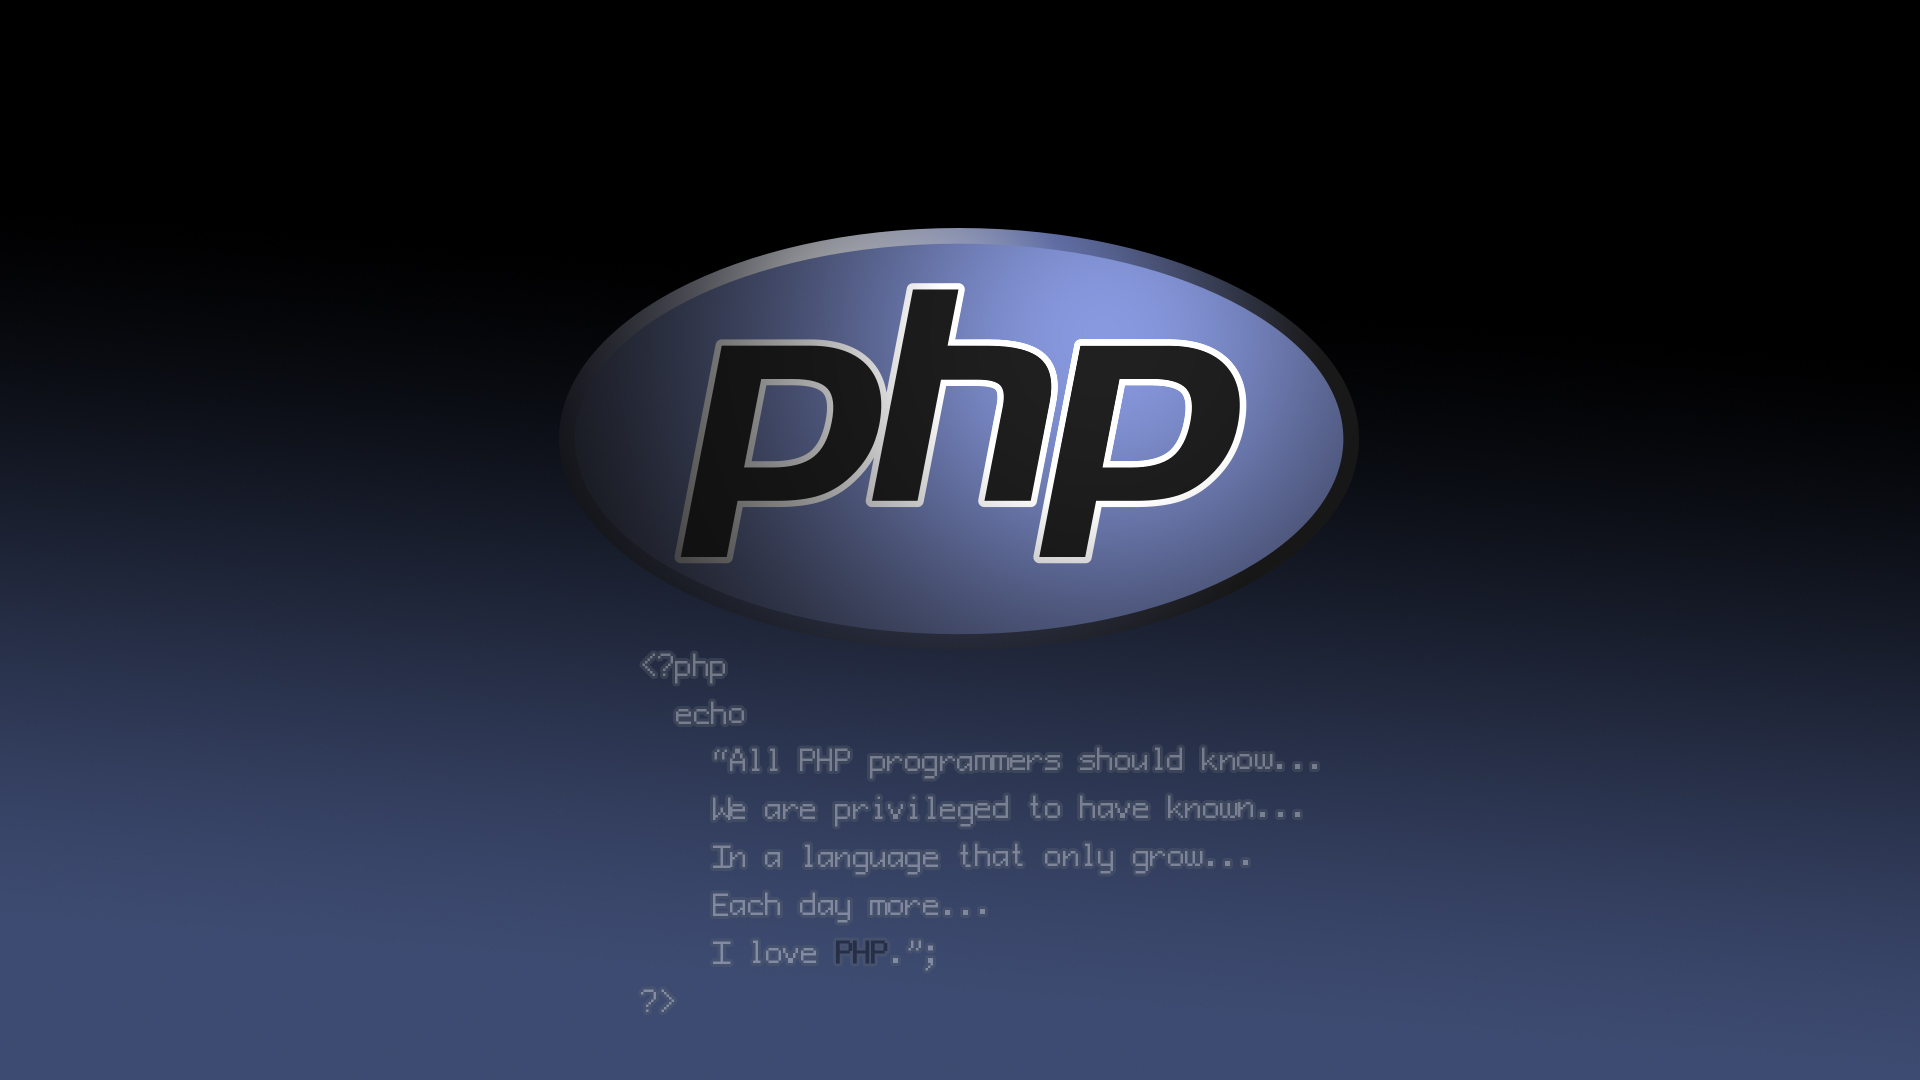 Wanted php developers - Nellai Help Line